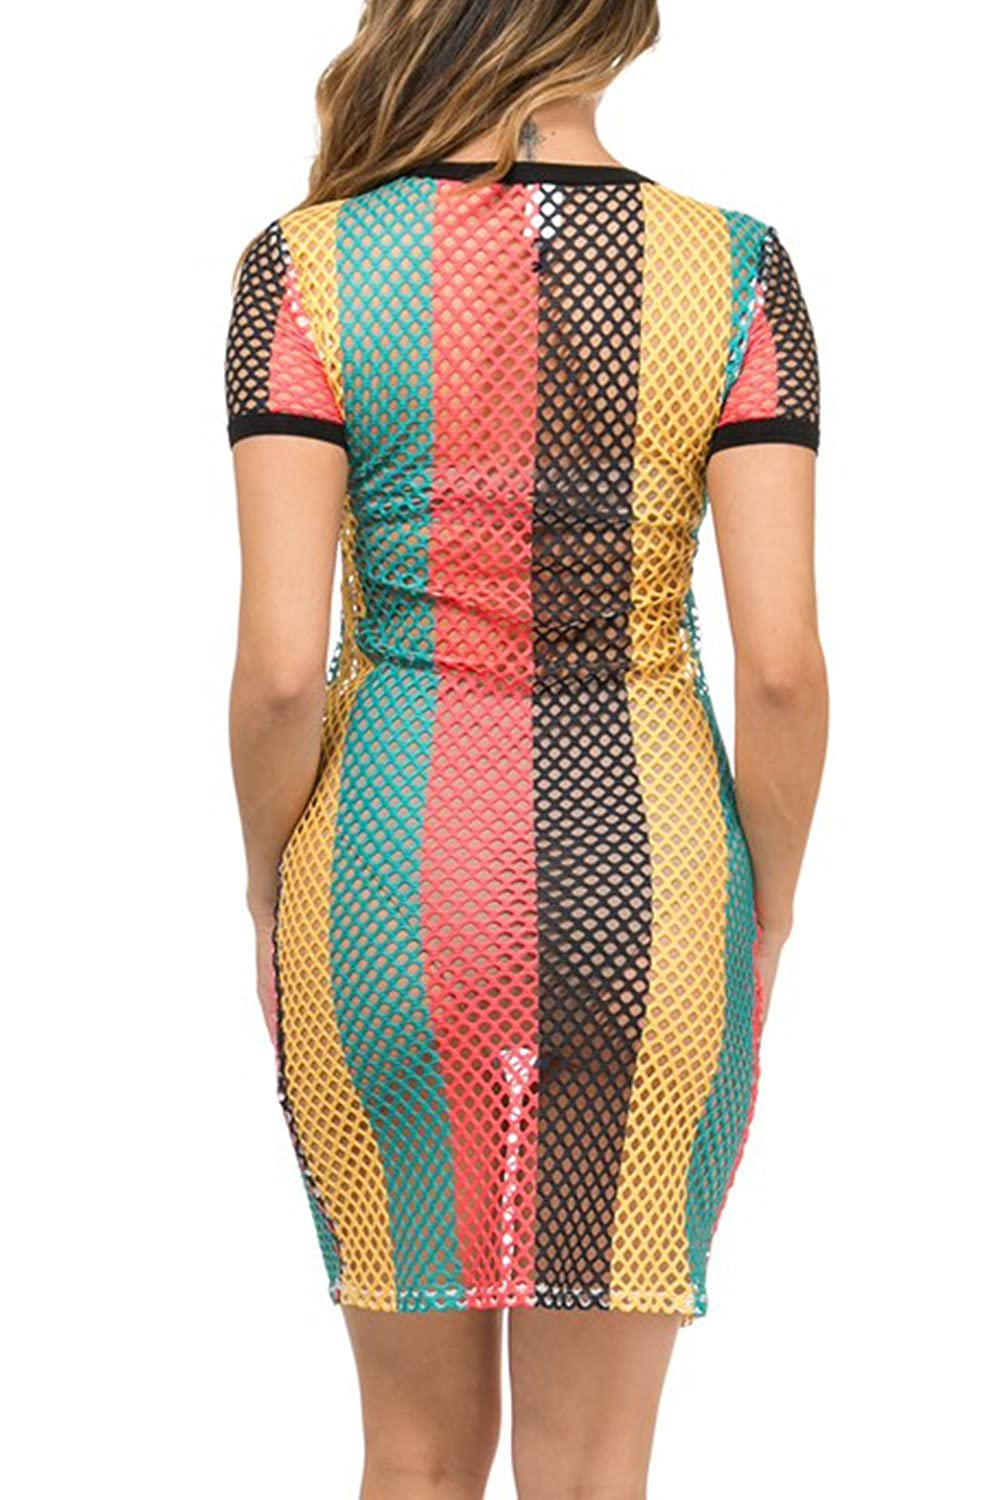 a7698d9f80 GENx Womens Fishnet Rasta Jamaica Bikini Cover Up Tunic Dress KD8710 -  Multi -: Amazon.co.uk: Clothing